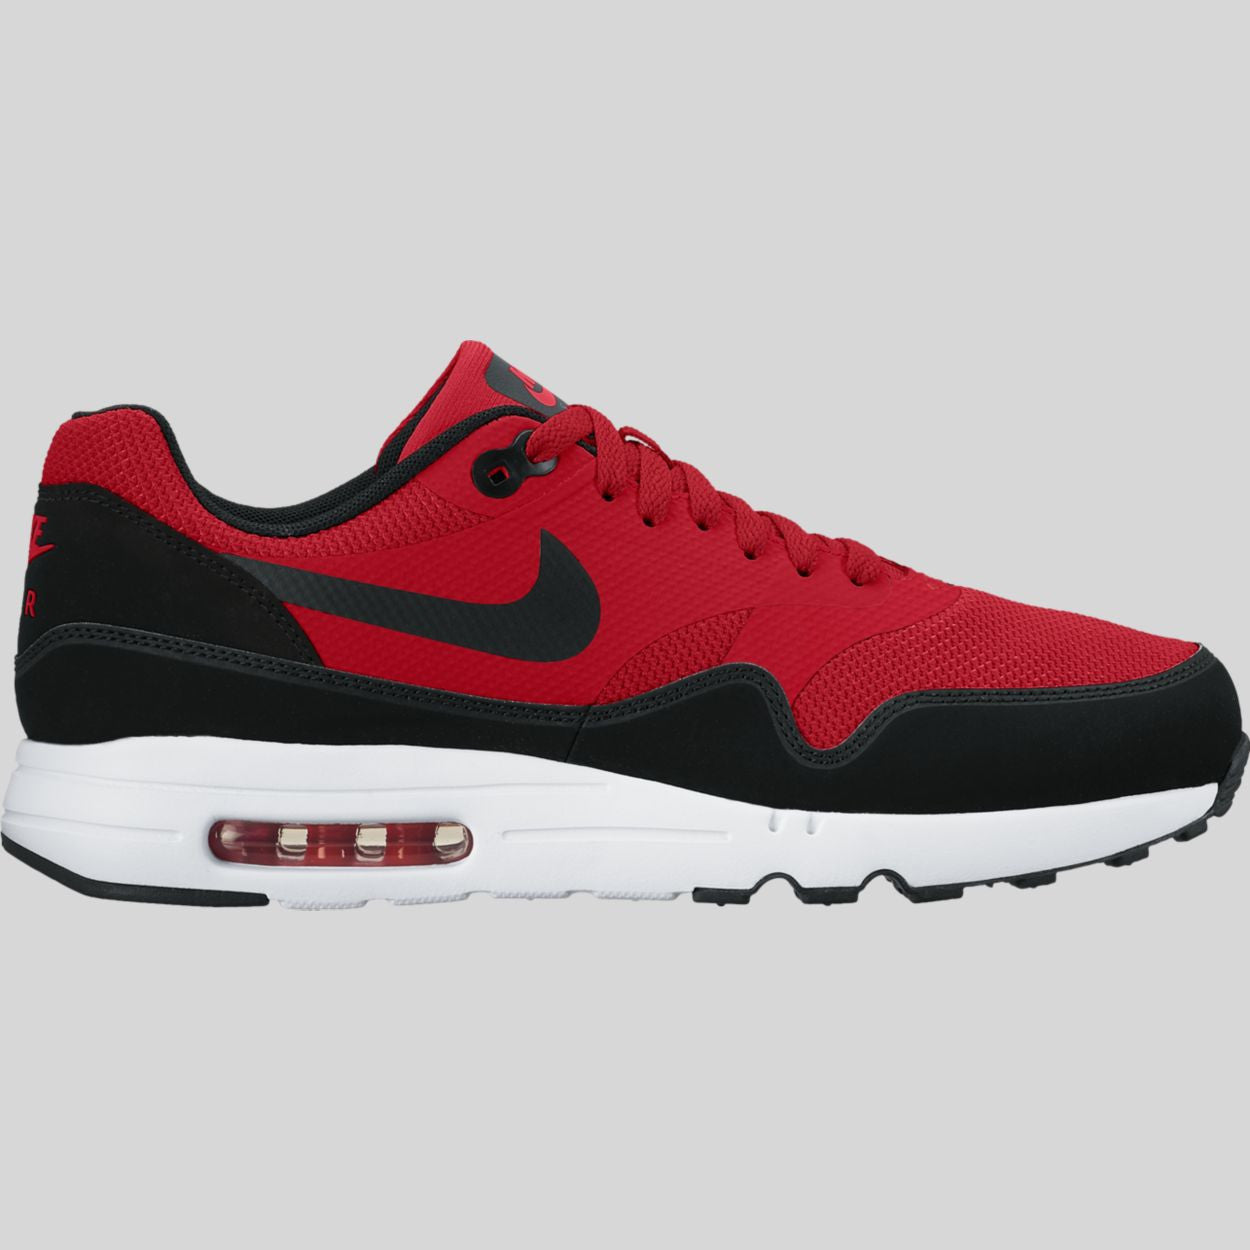 Sala Implacable Karu  Nike Air Max 1 Ultra 2.0 Essential University Red Black White (875679-600)  | KIX-FILES